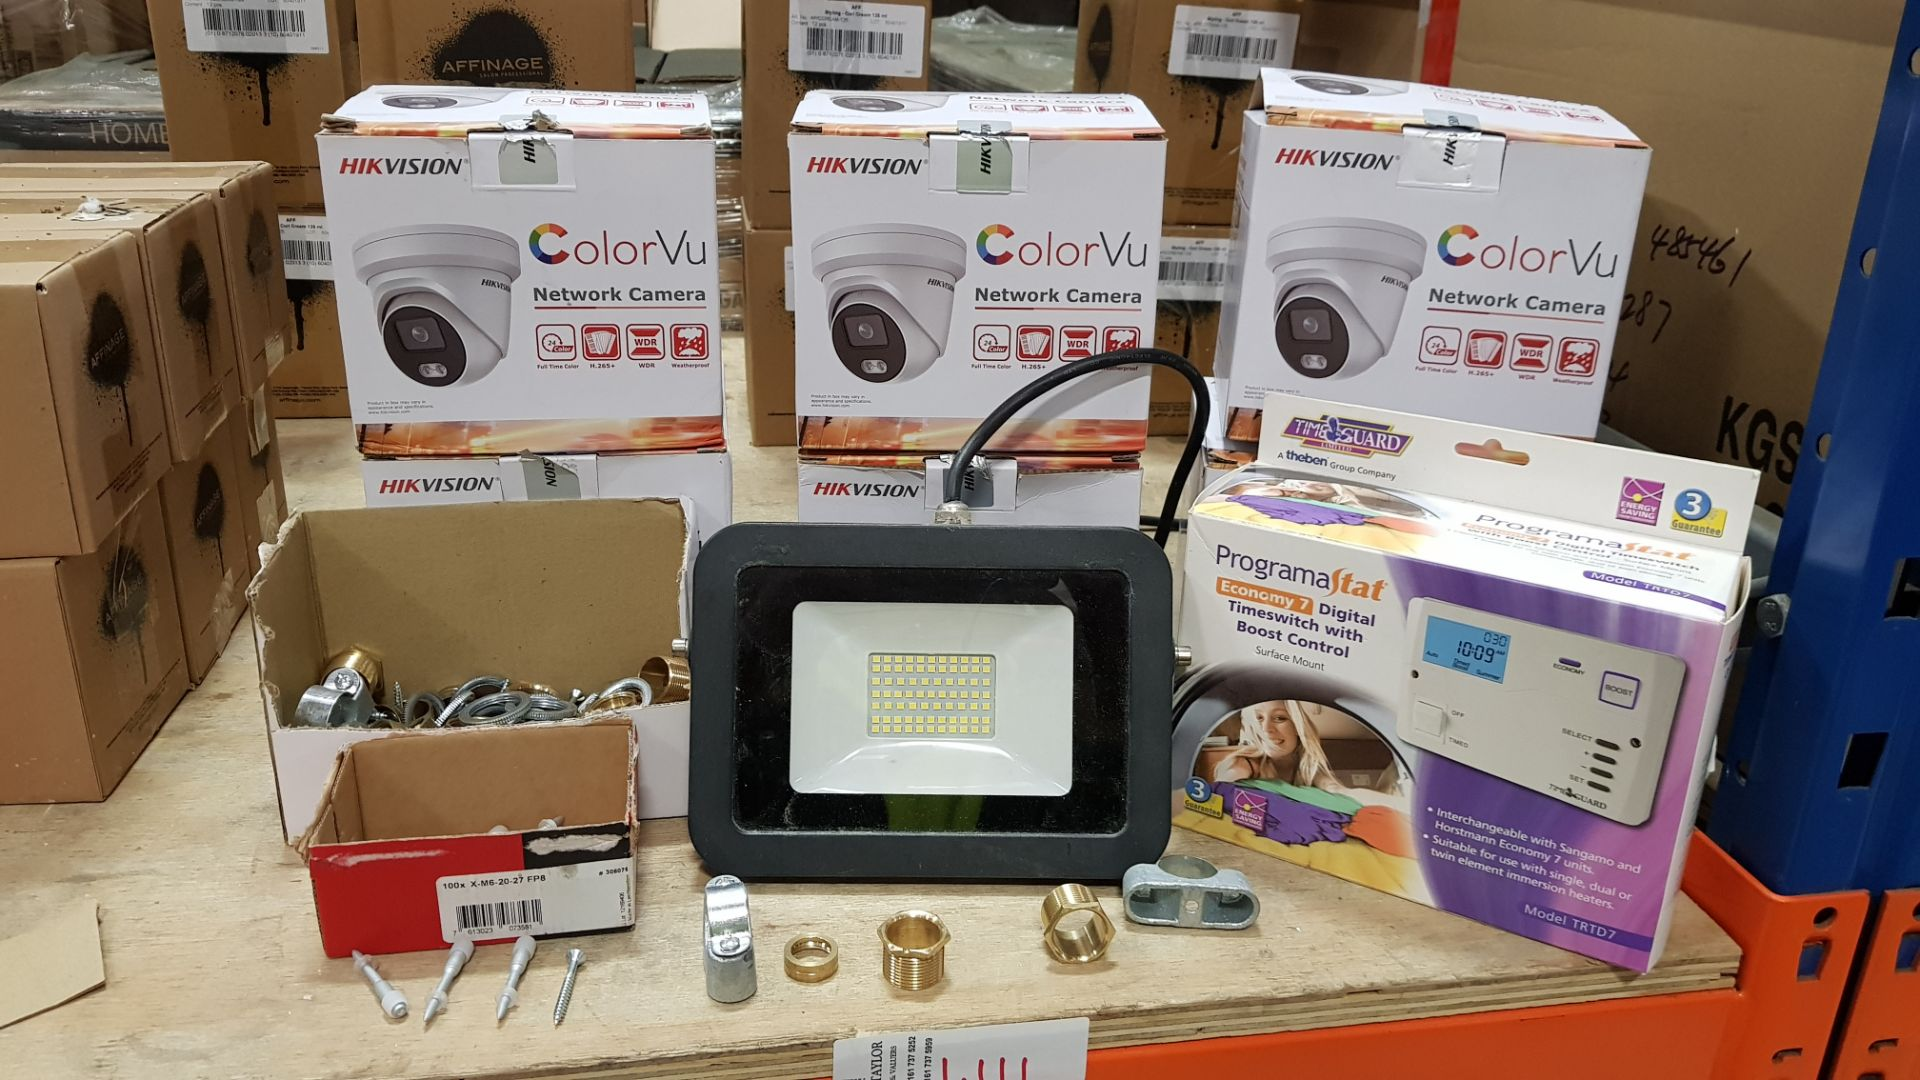 MIXED TRADE LOT CONTAINING 6 X COLORVU NETWORK CAMERAS WITH FULL TIME COLOR, H.625+ WDR AND